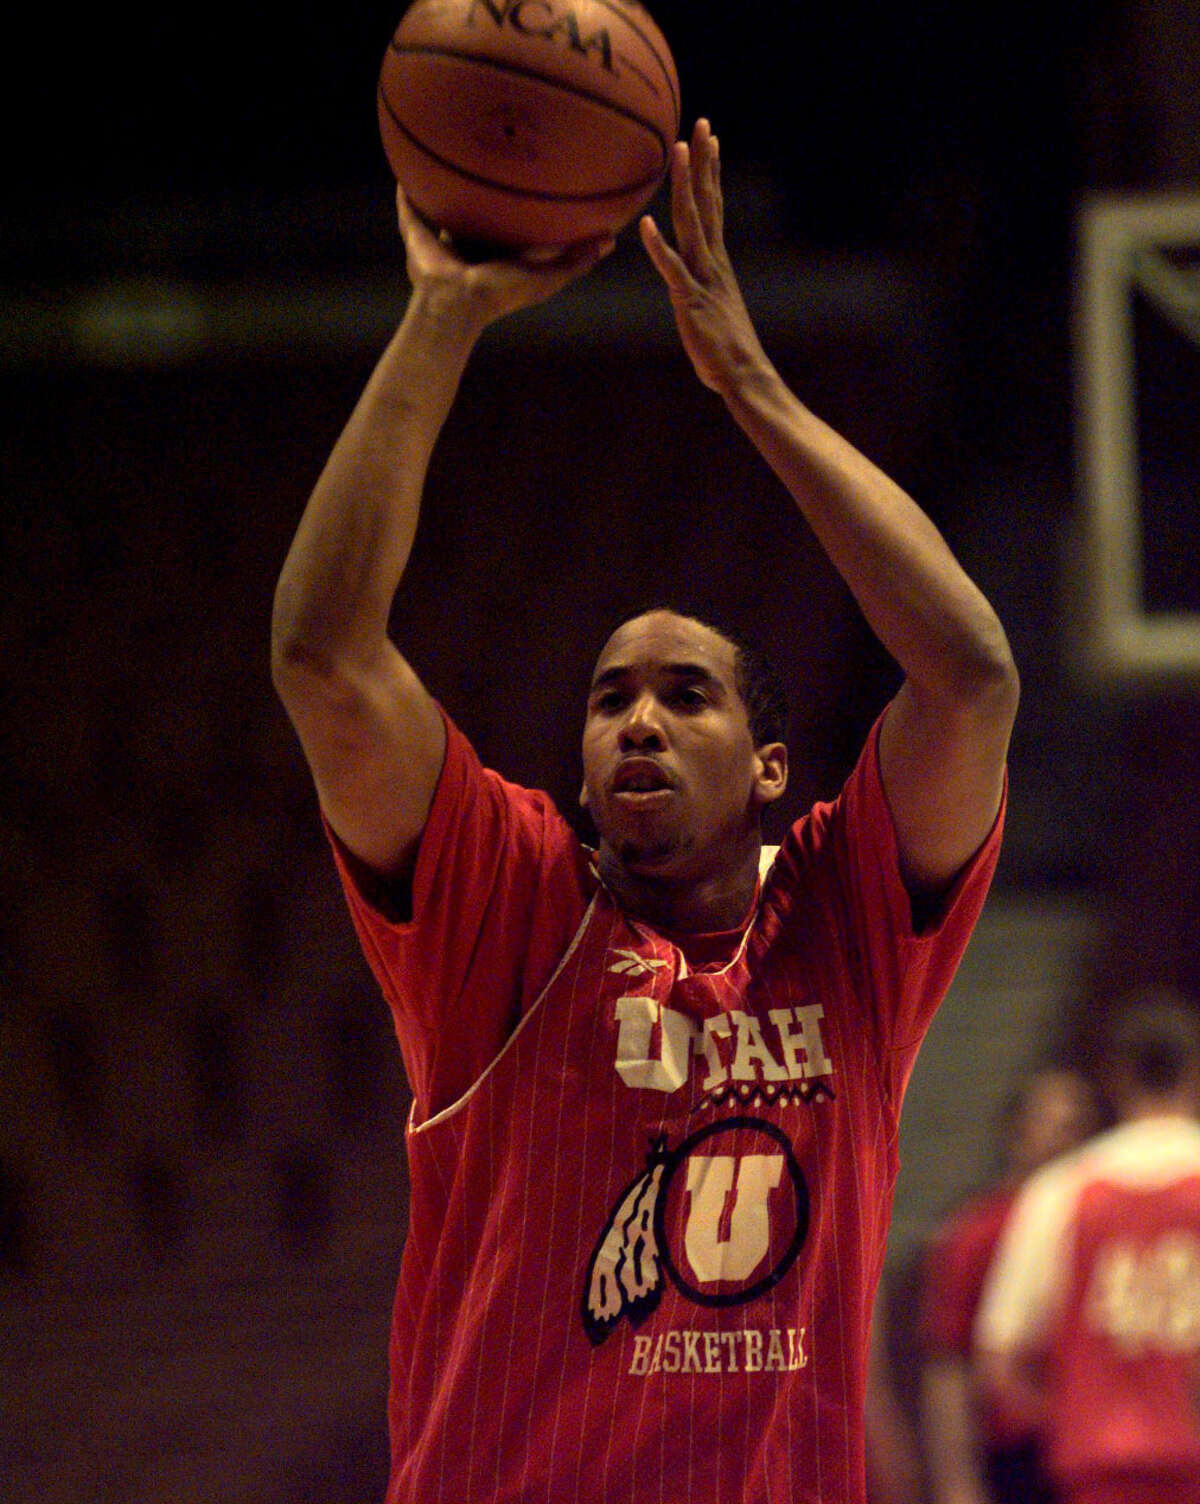 Andre Miller, Utah Mar. 21, 1998: No. 3 Utah defeats No. 1 Arizona 76-51 in Elite Eight Miller posted the fourth triple-double in NCAA Tournament history, going for 18 points, 14 rebounds, and 13 assists against the defending champions. Miller's Utes were taken out by Kentucky in the National Championship game.